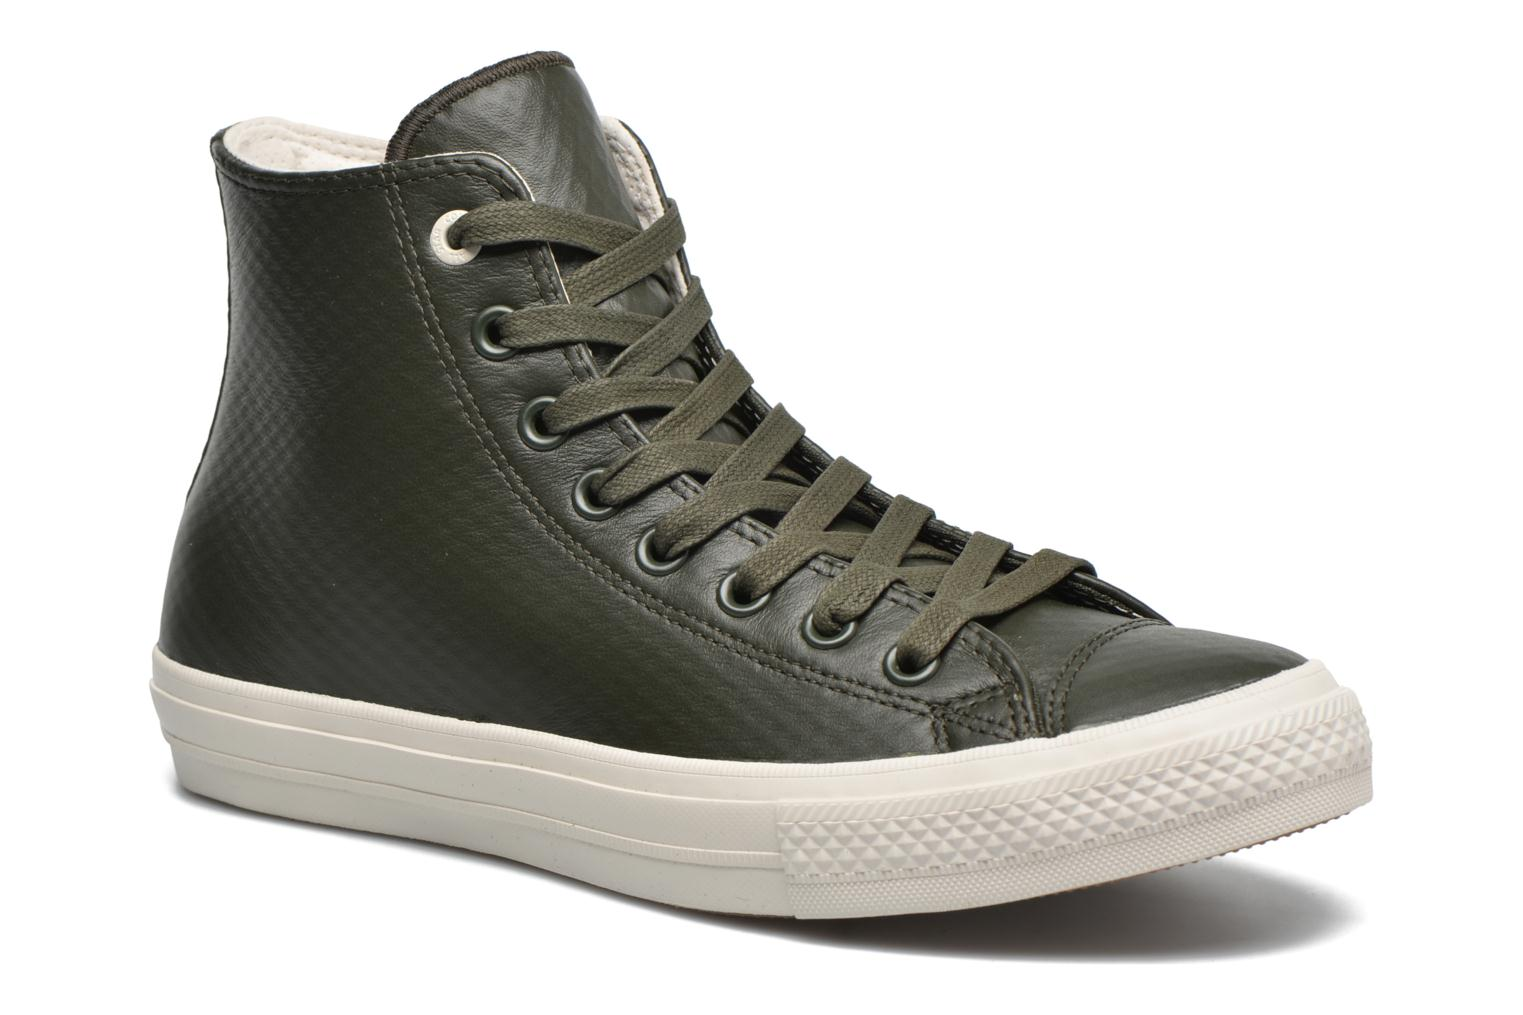 Chuck Taylor All Star II Mesh-Backed Leather Hi M Collard/Parchment/Gum